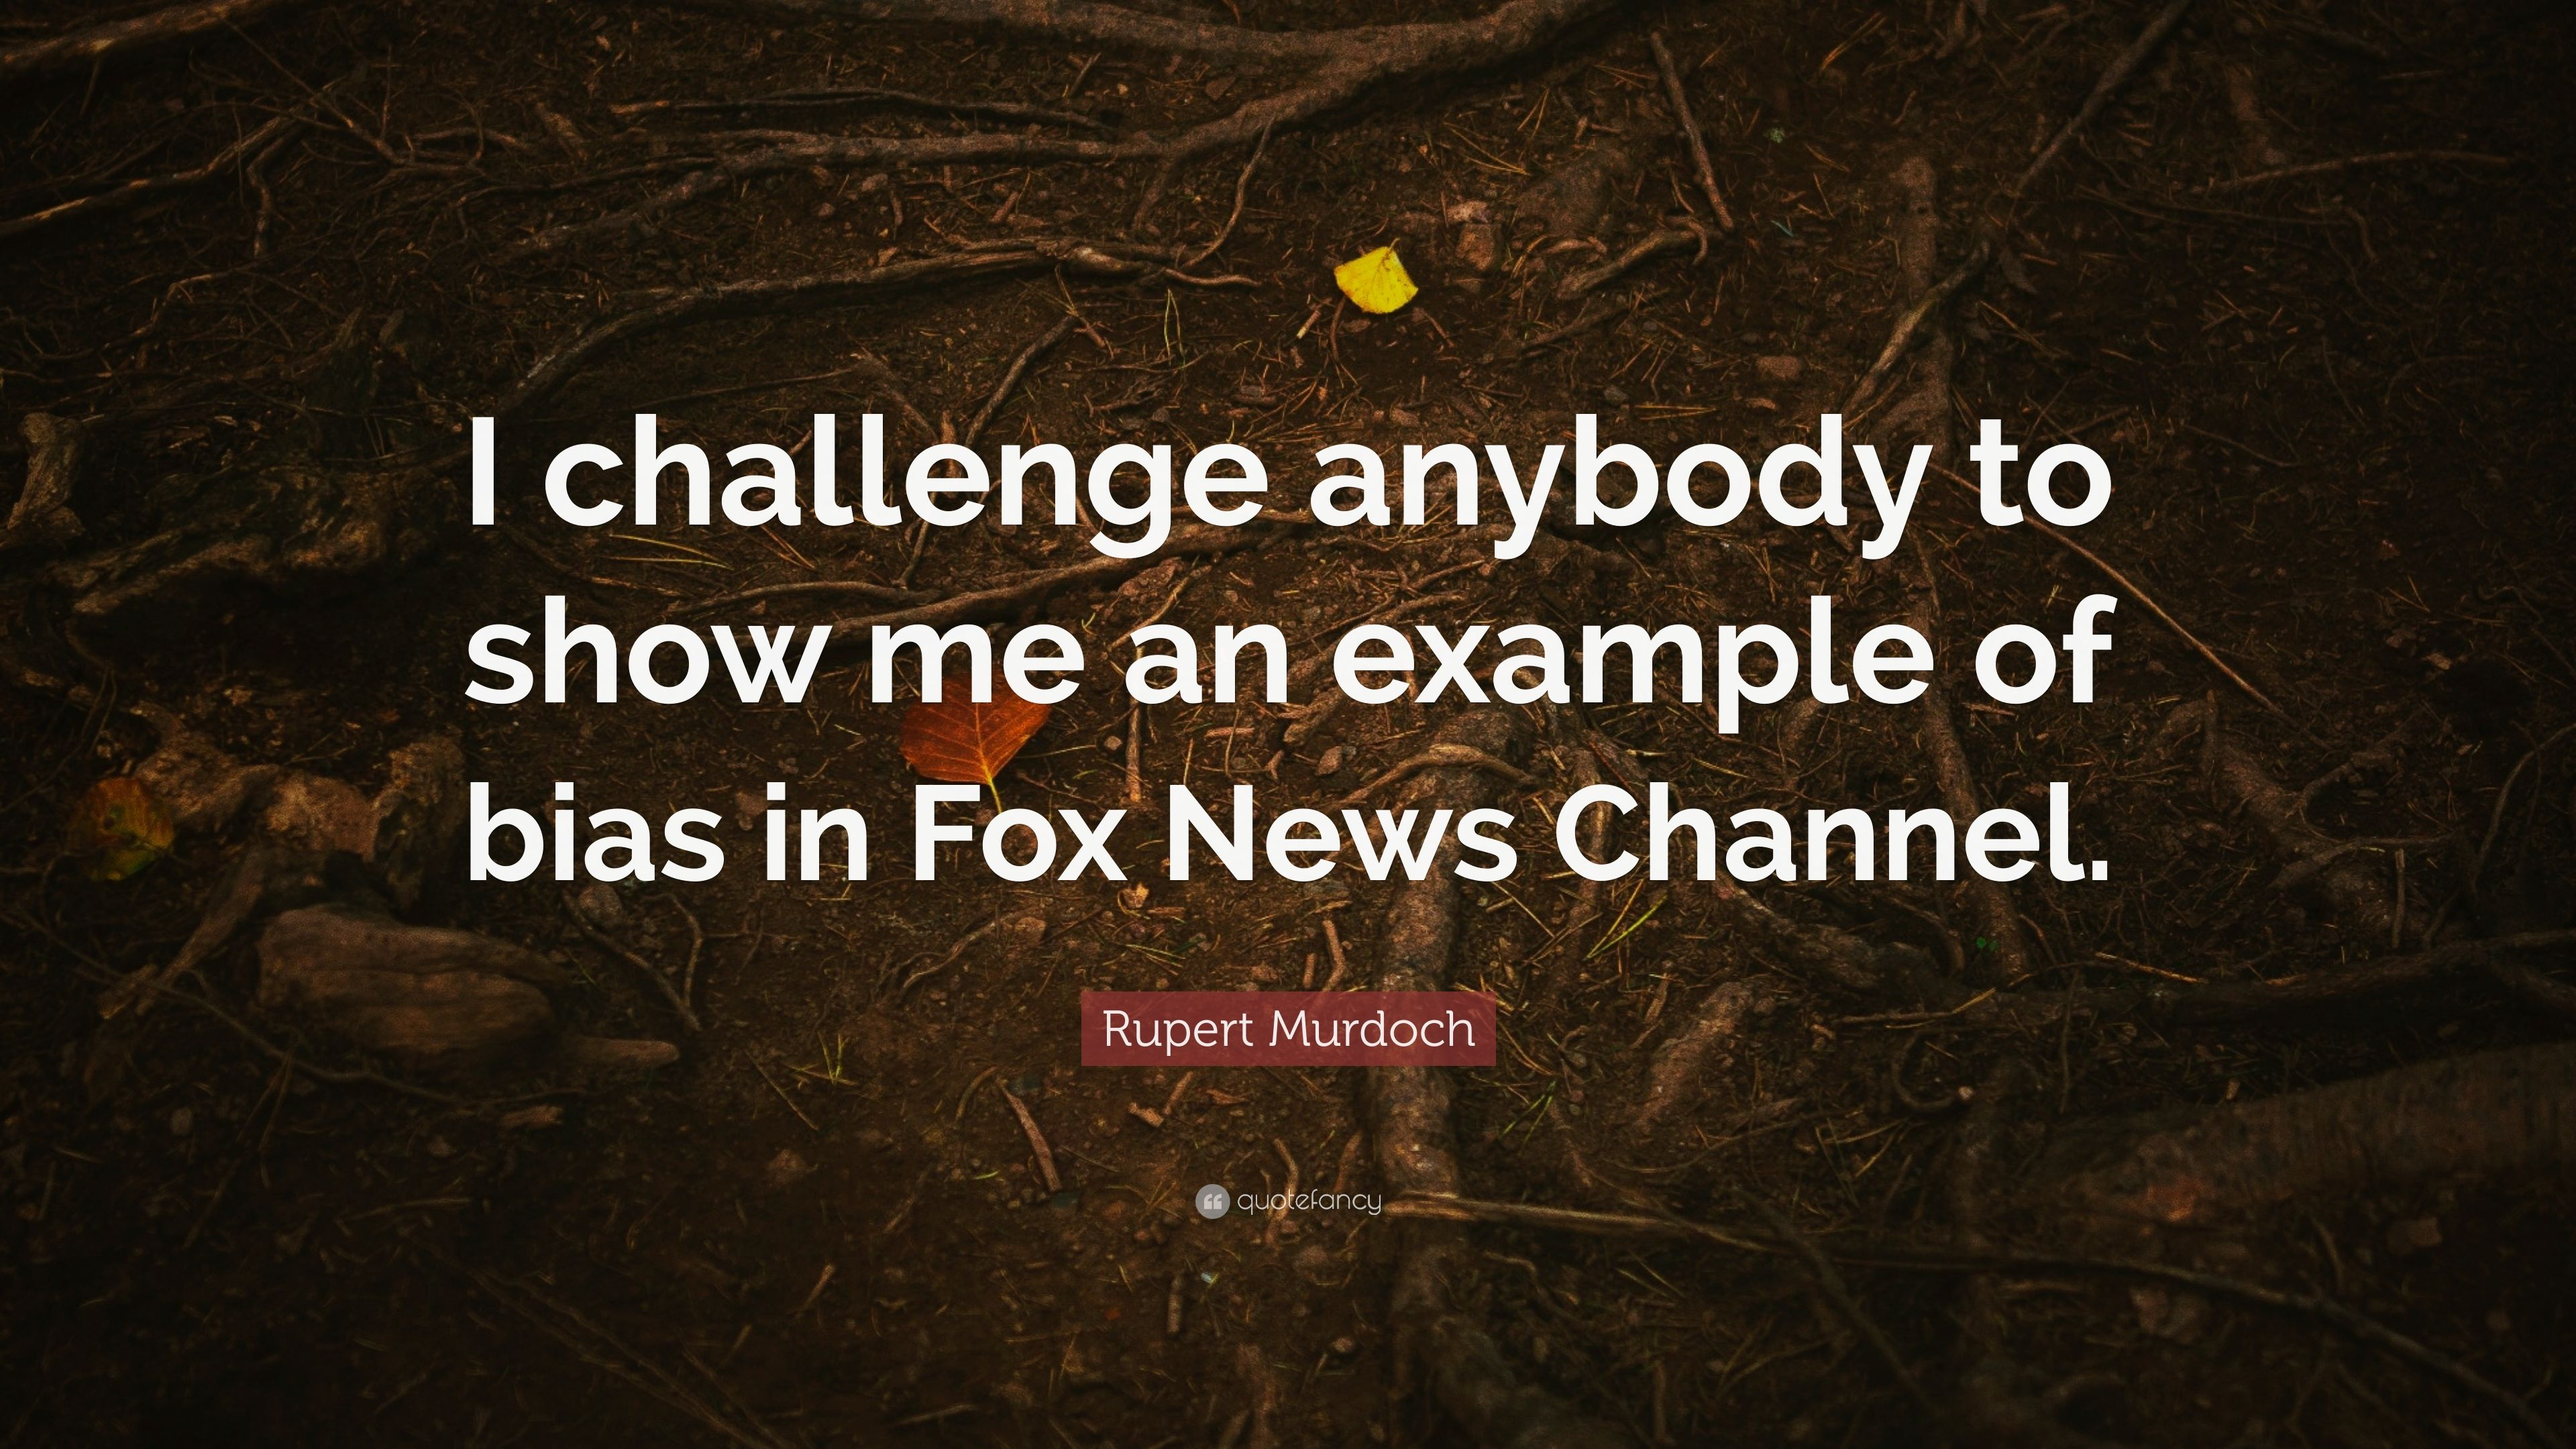 rupert murdoch quote   u201ci challenge anybody to show me an example of bias in fox news channel